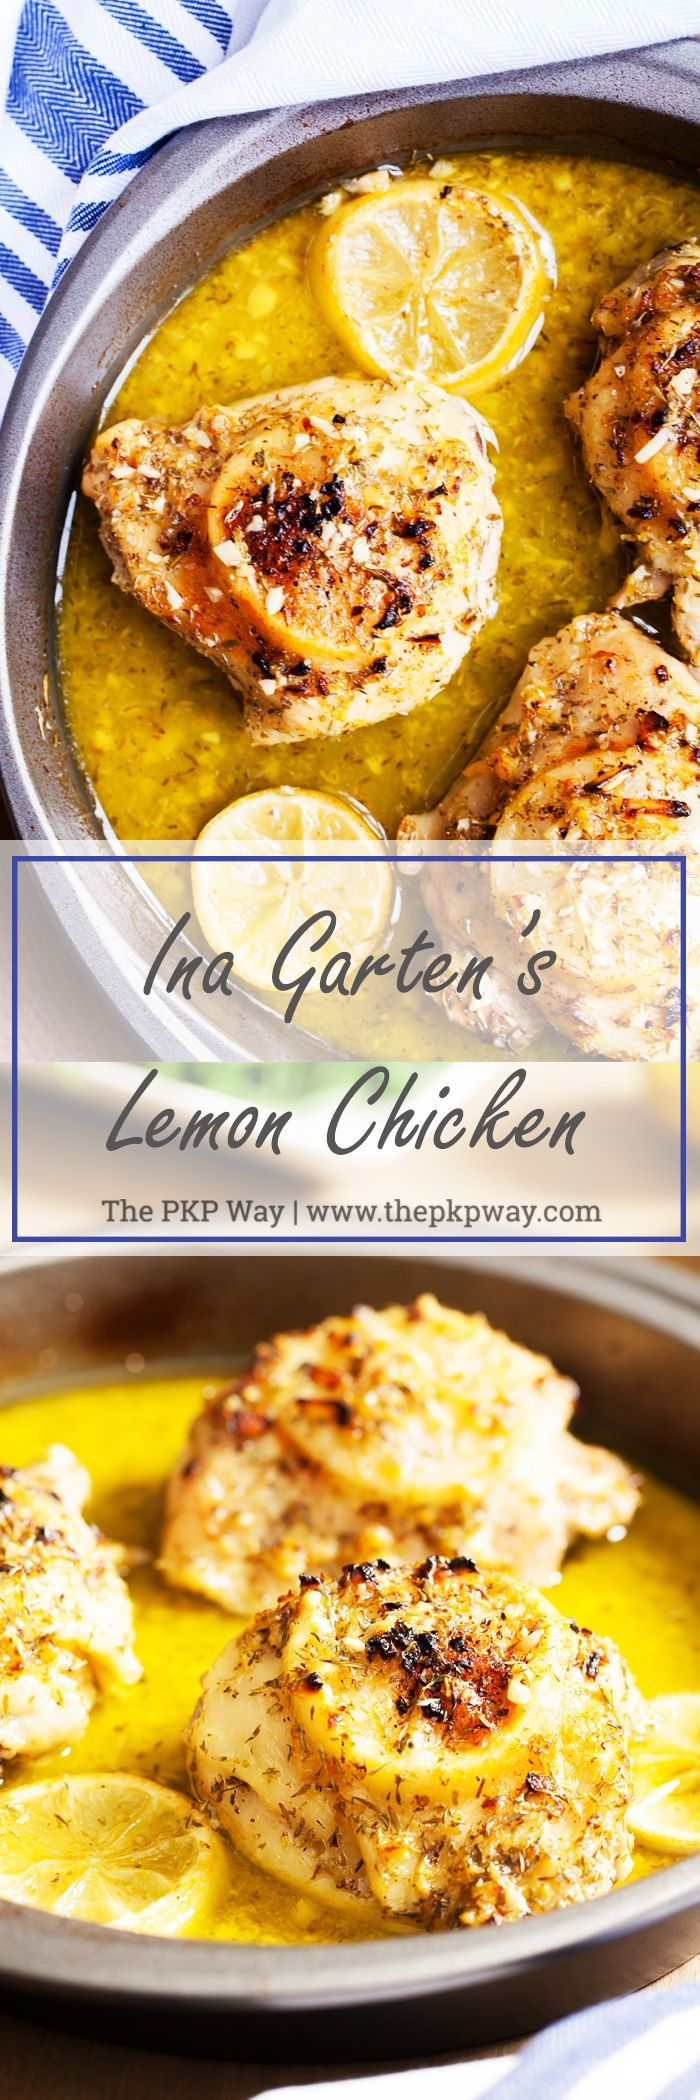 Best 20 ina garten lemon chicken ideas on pinterest Barefoot contessa recipes